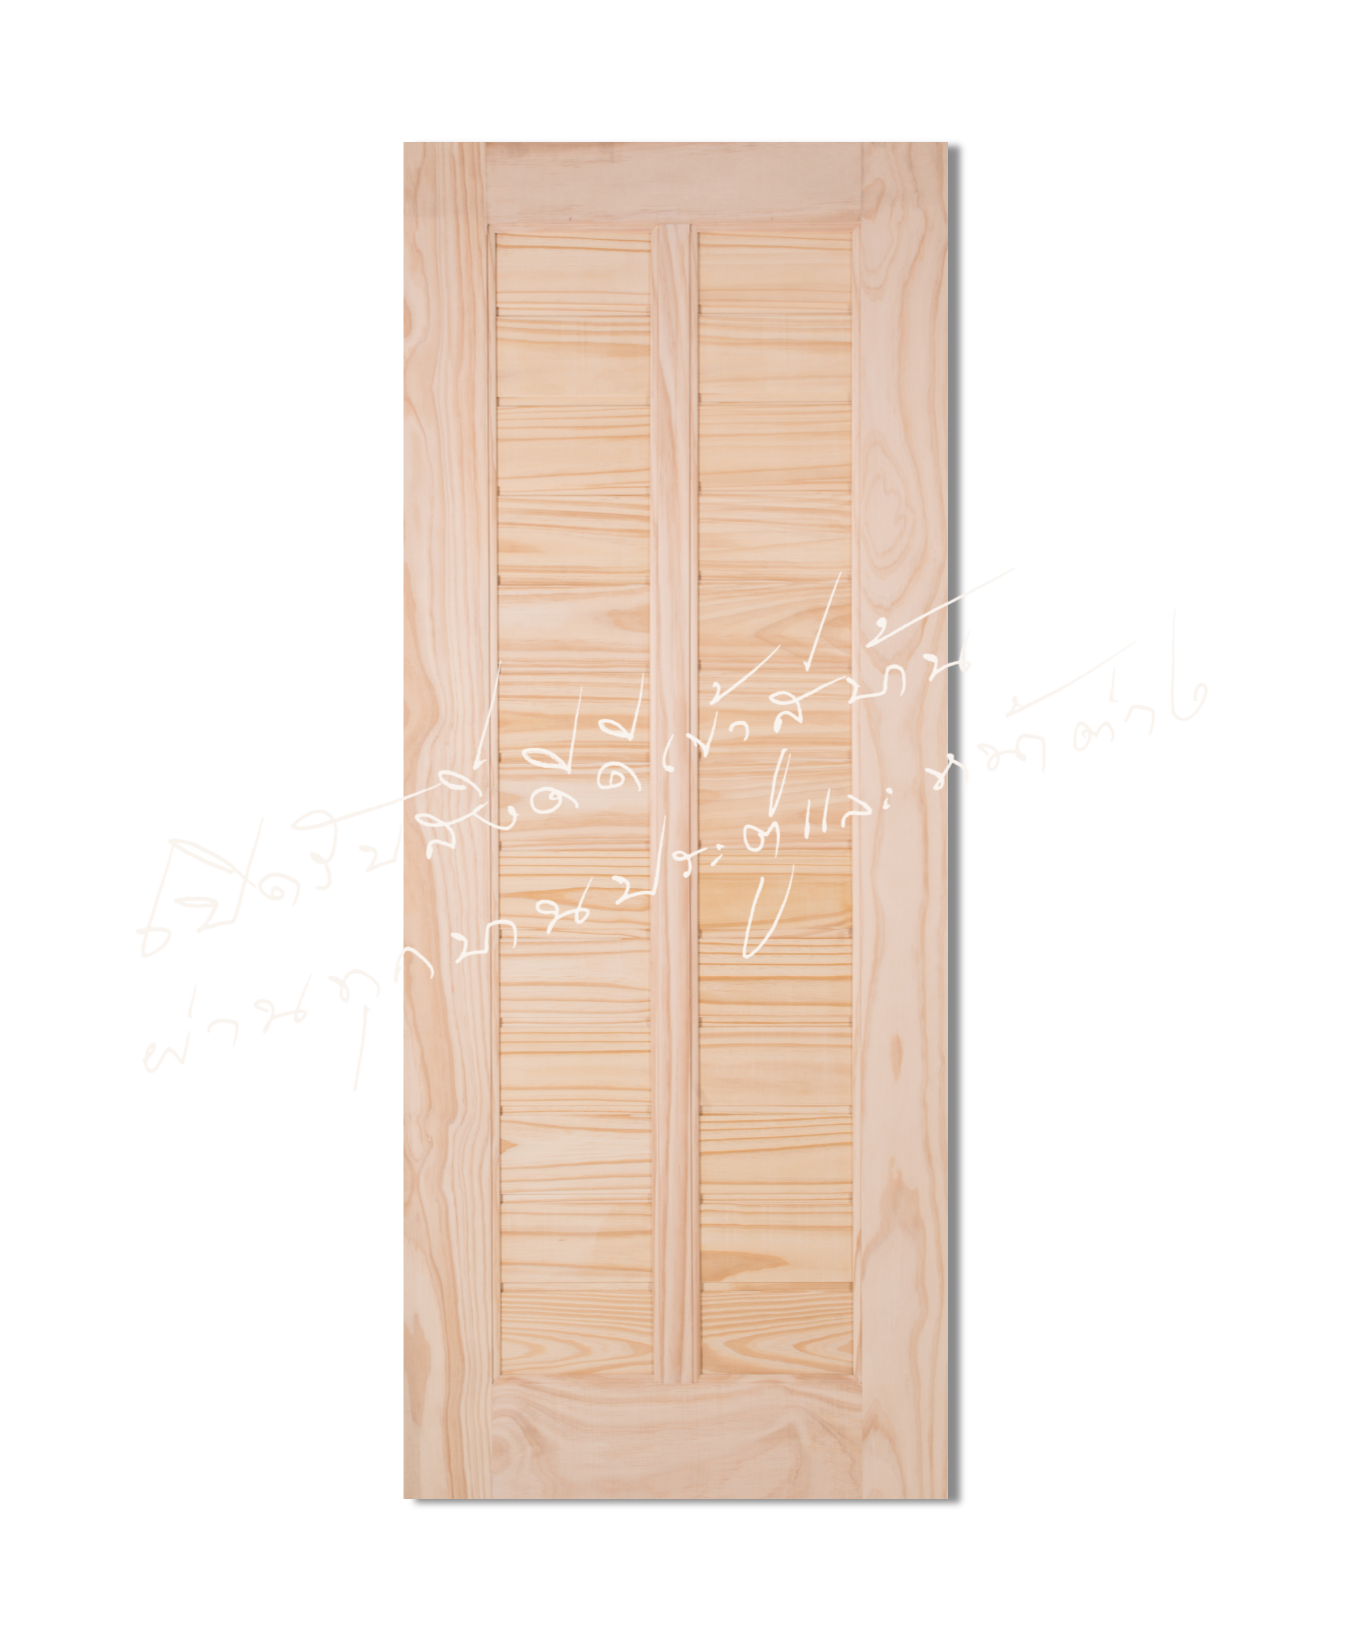 L163 SOLID WOODEN DOOR PINE